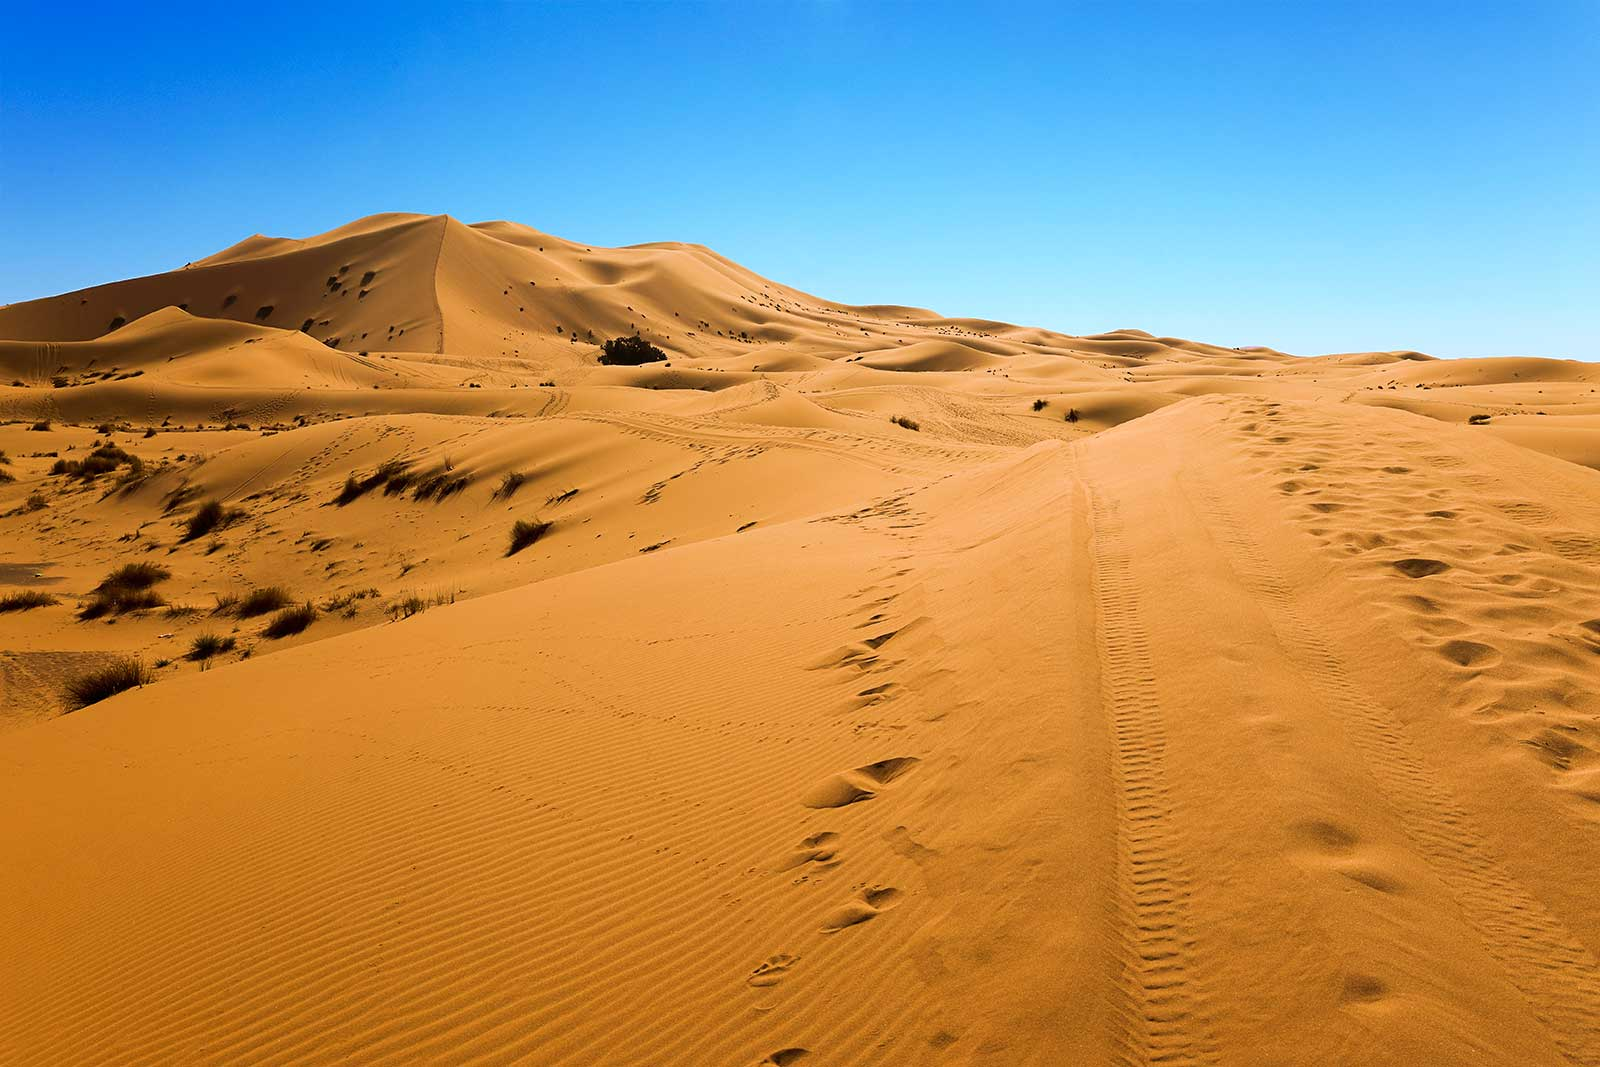 Erg Chebbi is one of Morocco's two Saharan ergs near the small village of Merzouga.  And erg is a large sea of dunes formed by wind-blown sand. The other is Erg Chigaga near M'hamid (south of Zagora).